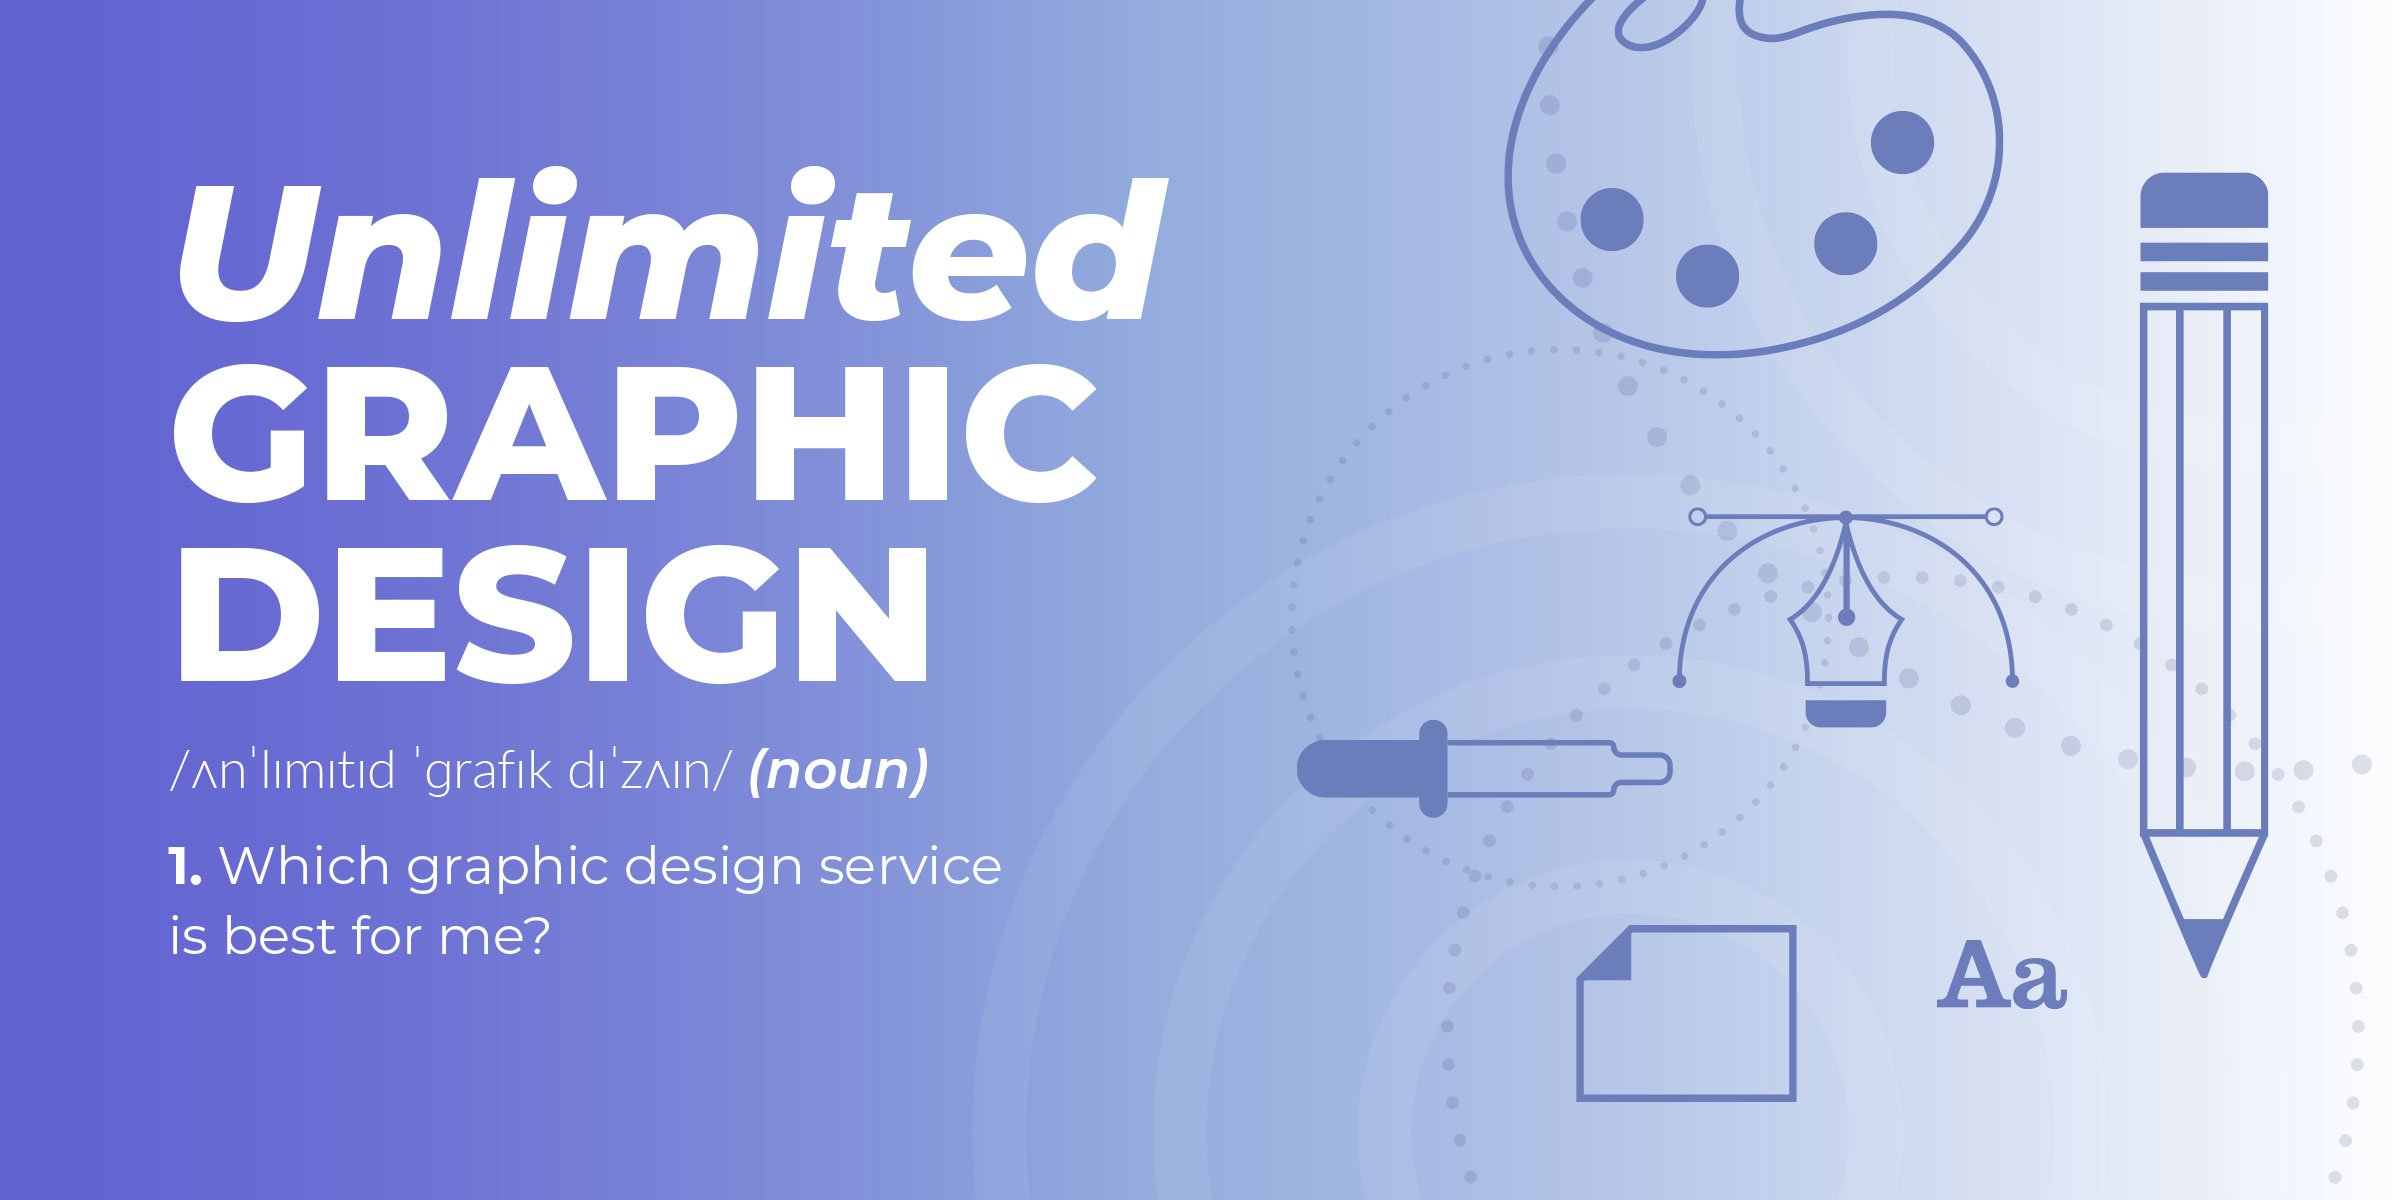 What is Unlimited Graphic Design